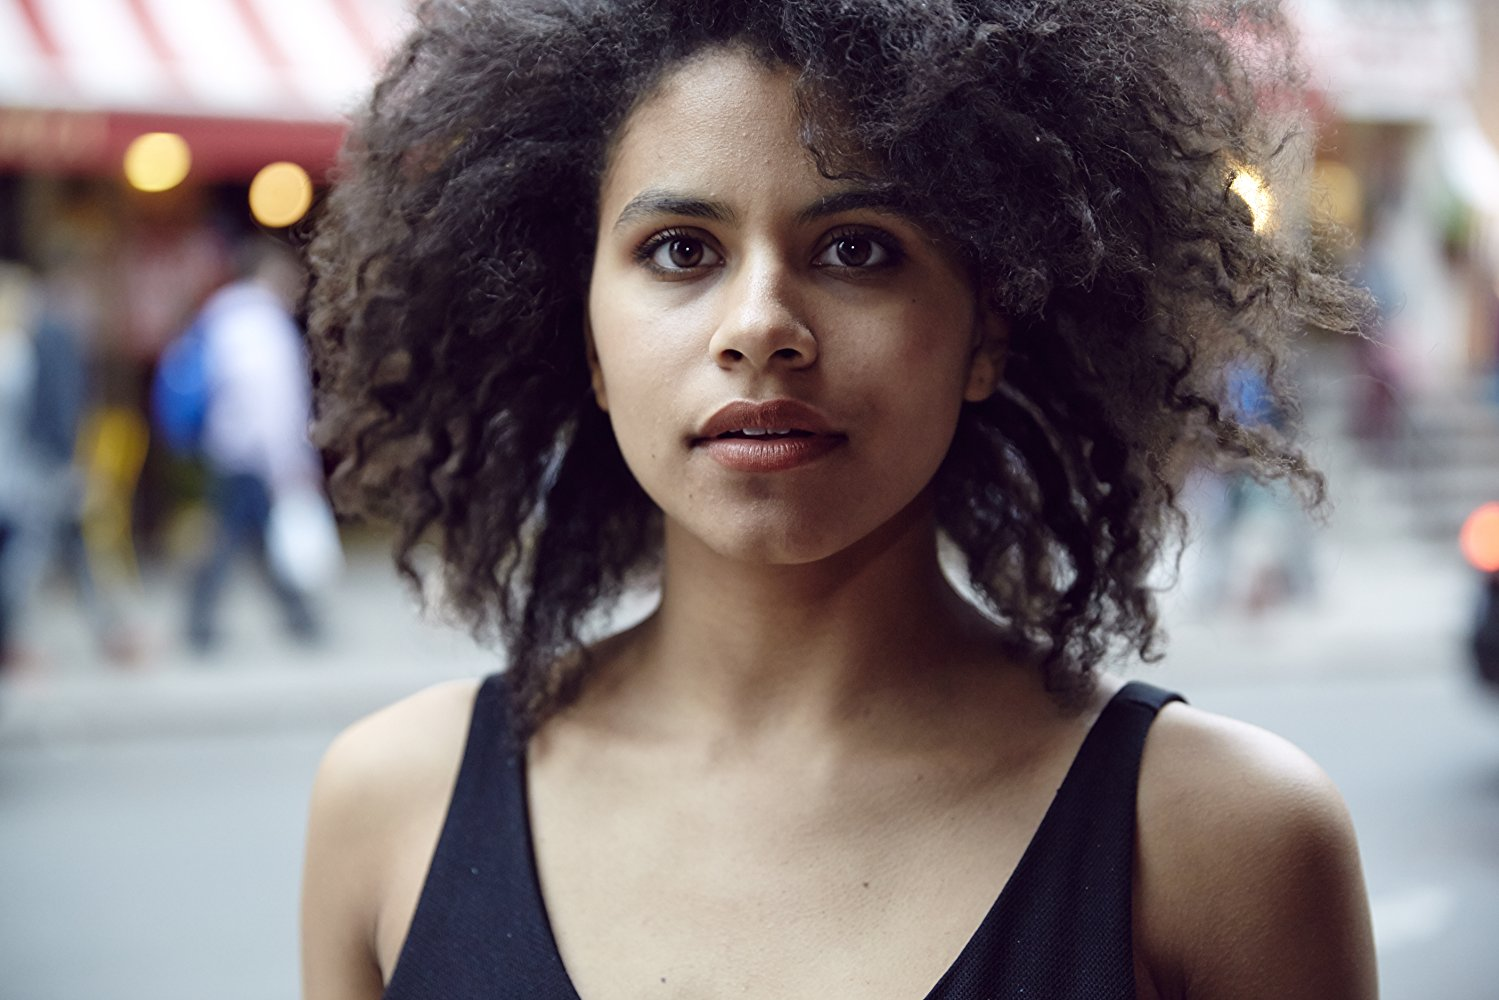 https://cinemaplanet.pt/wp-content/uploads/2018/04/Zazie-Beetz.jpg